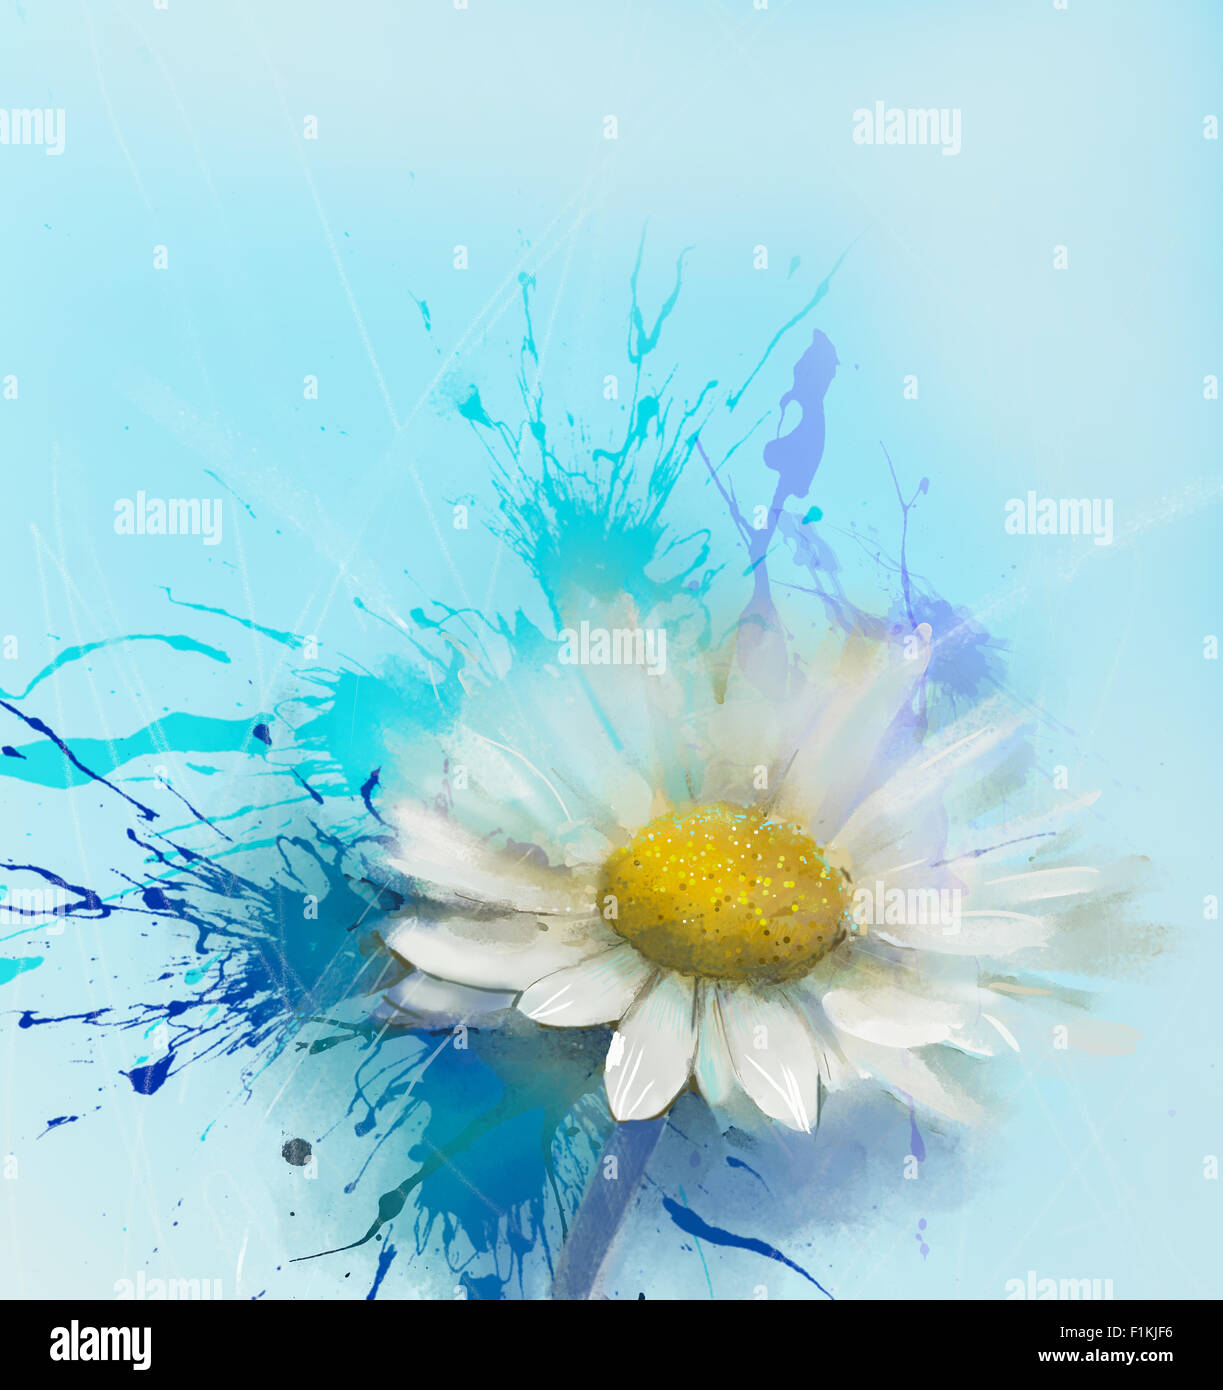 Abstract white daisy flower oil painting with blue space for design abstract white daisy flower oil painting with blue space for design mightylinksfo